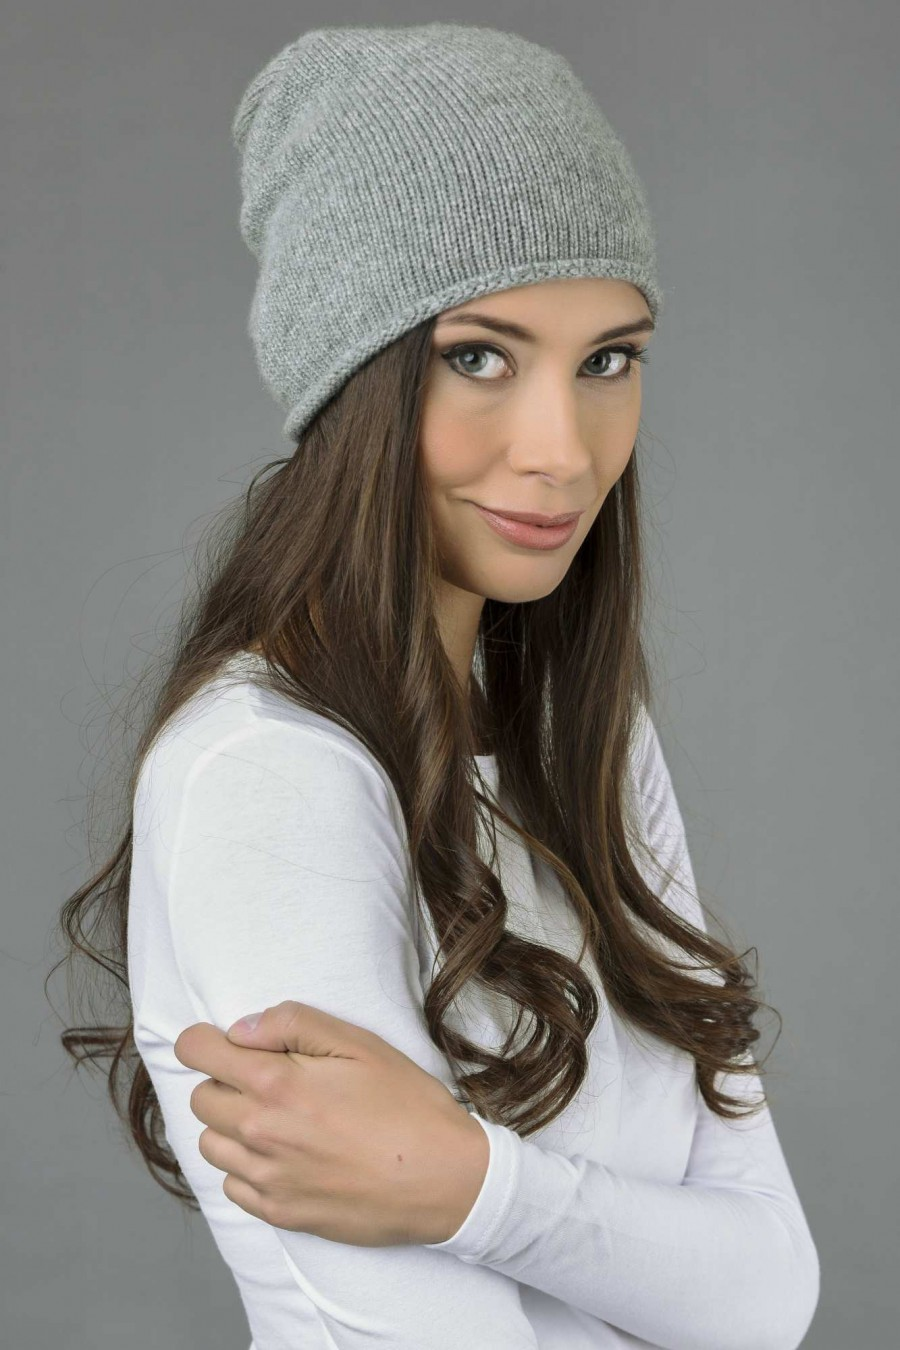 Pure Cashmere Plain Knitted Slouchy Beanie Hat in Light Grey 2 9de25bd5d13